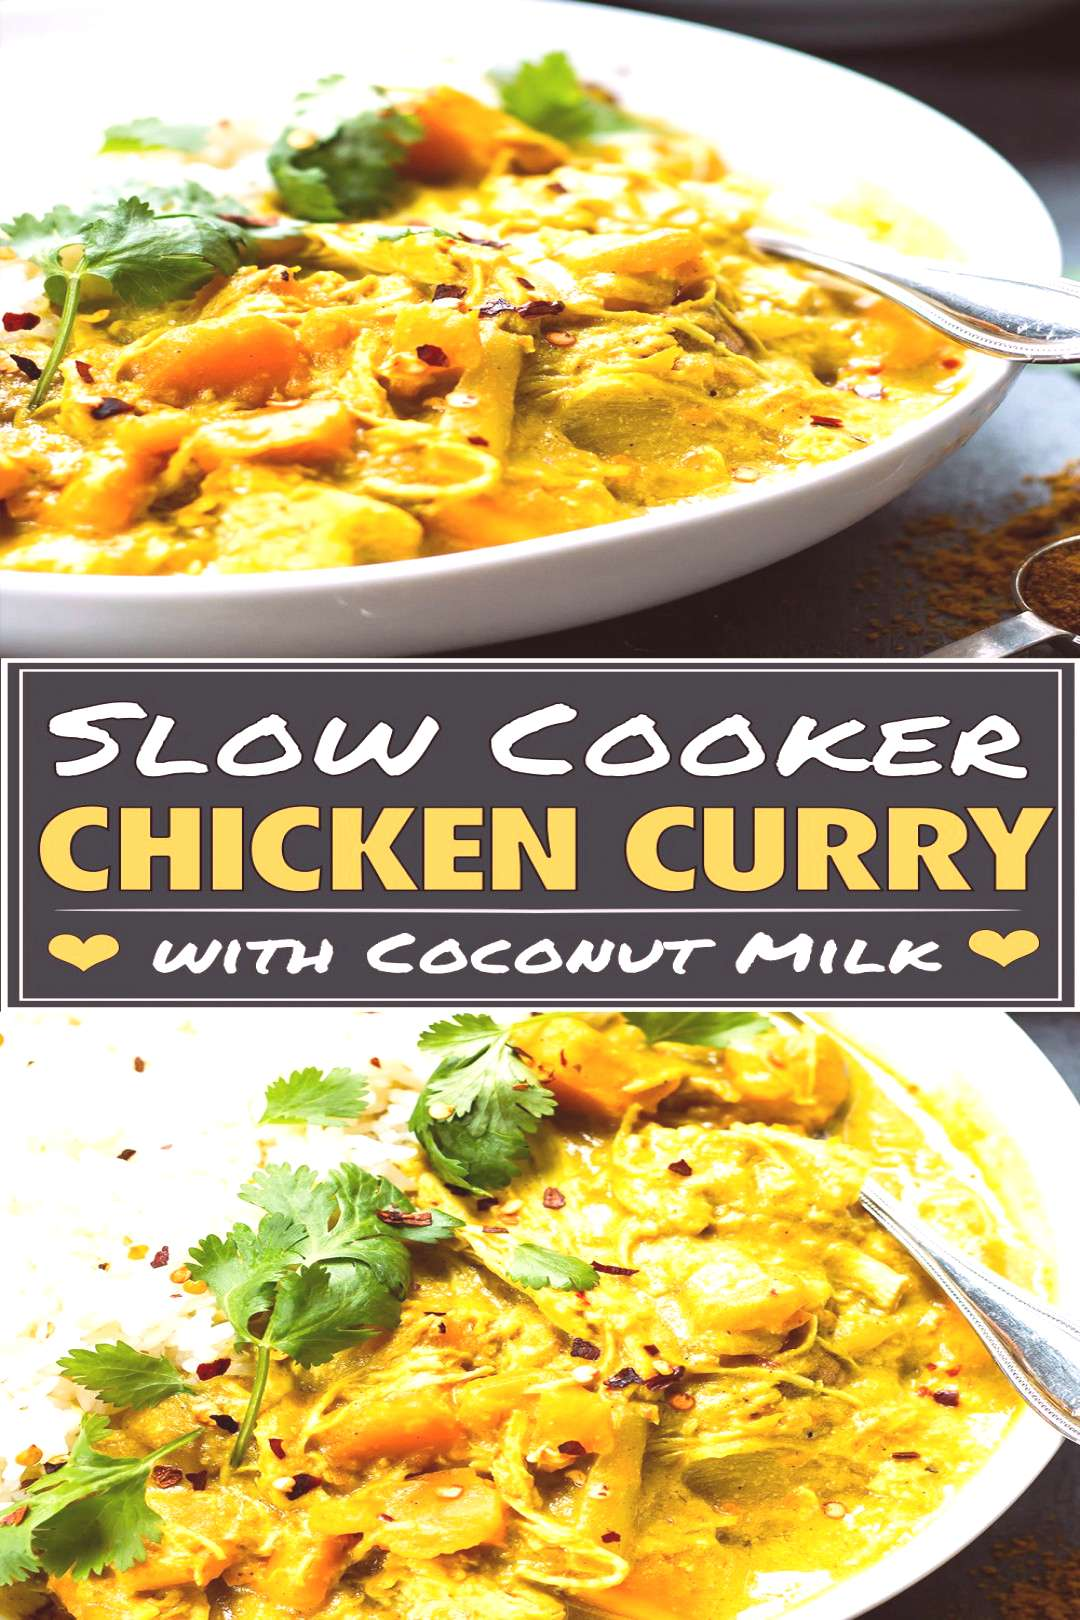 Easy Slow Cooker Chicken Curry Recipe Slow Cooker Chicken Curry recipe that is made with coconut mi